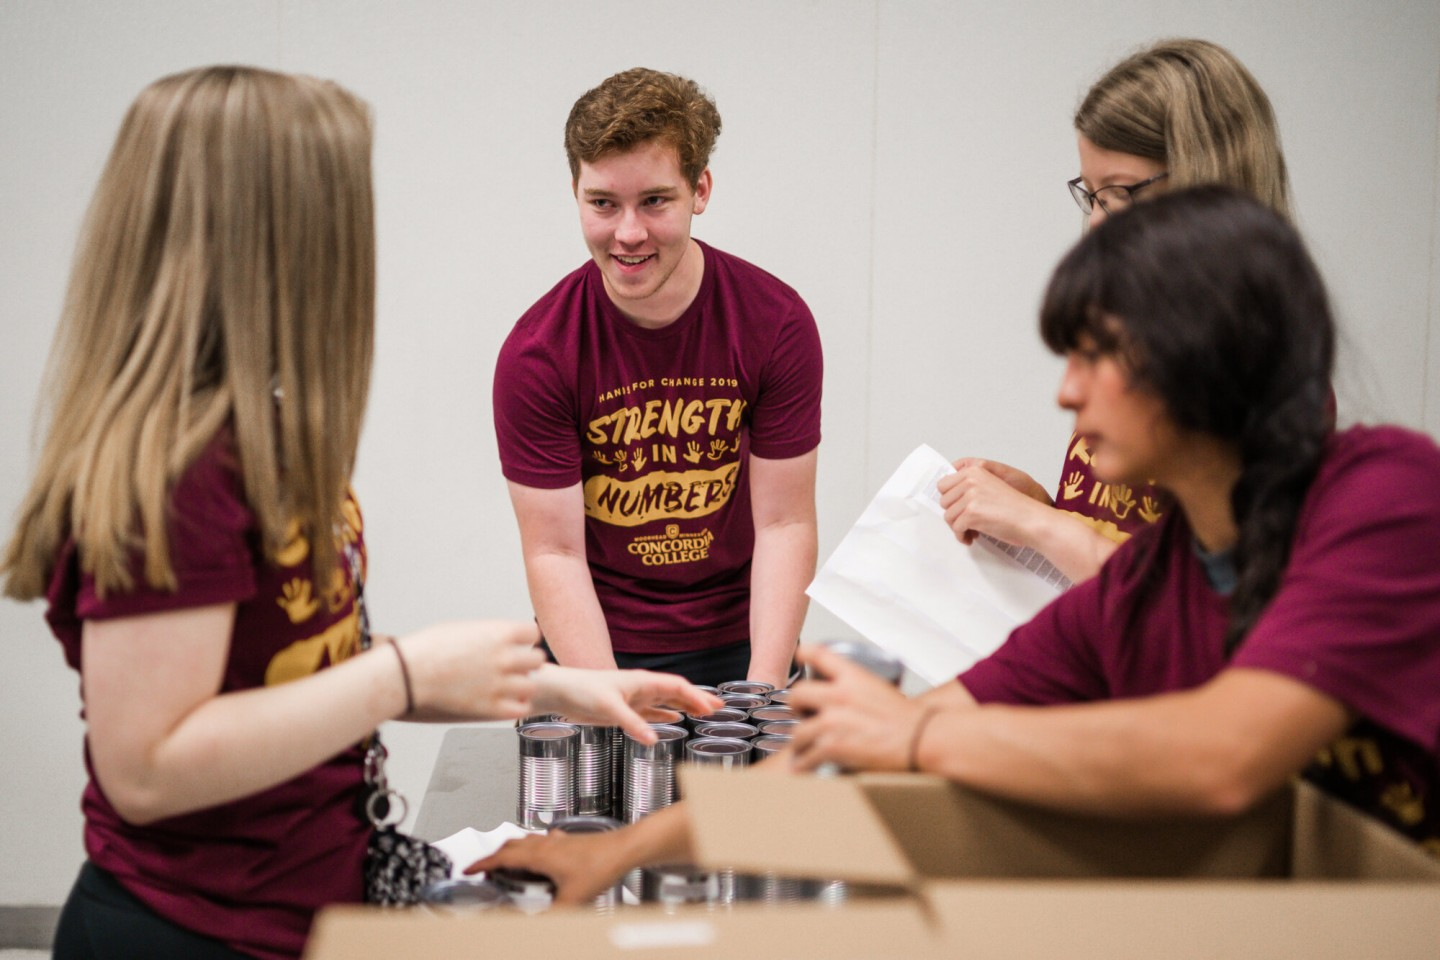 Cobbers packing items at food bank